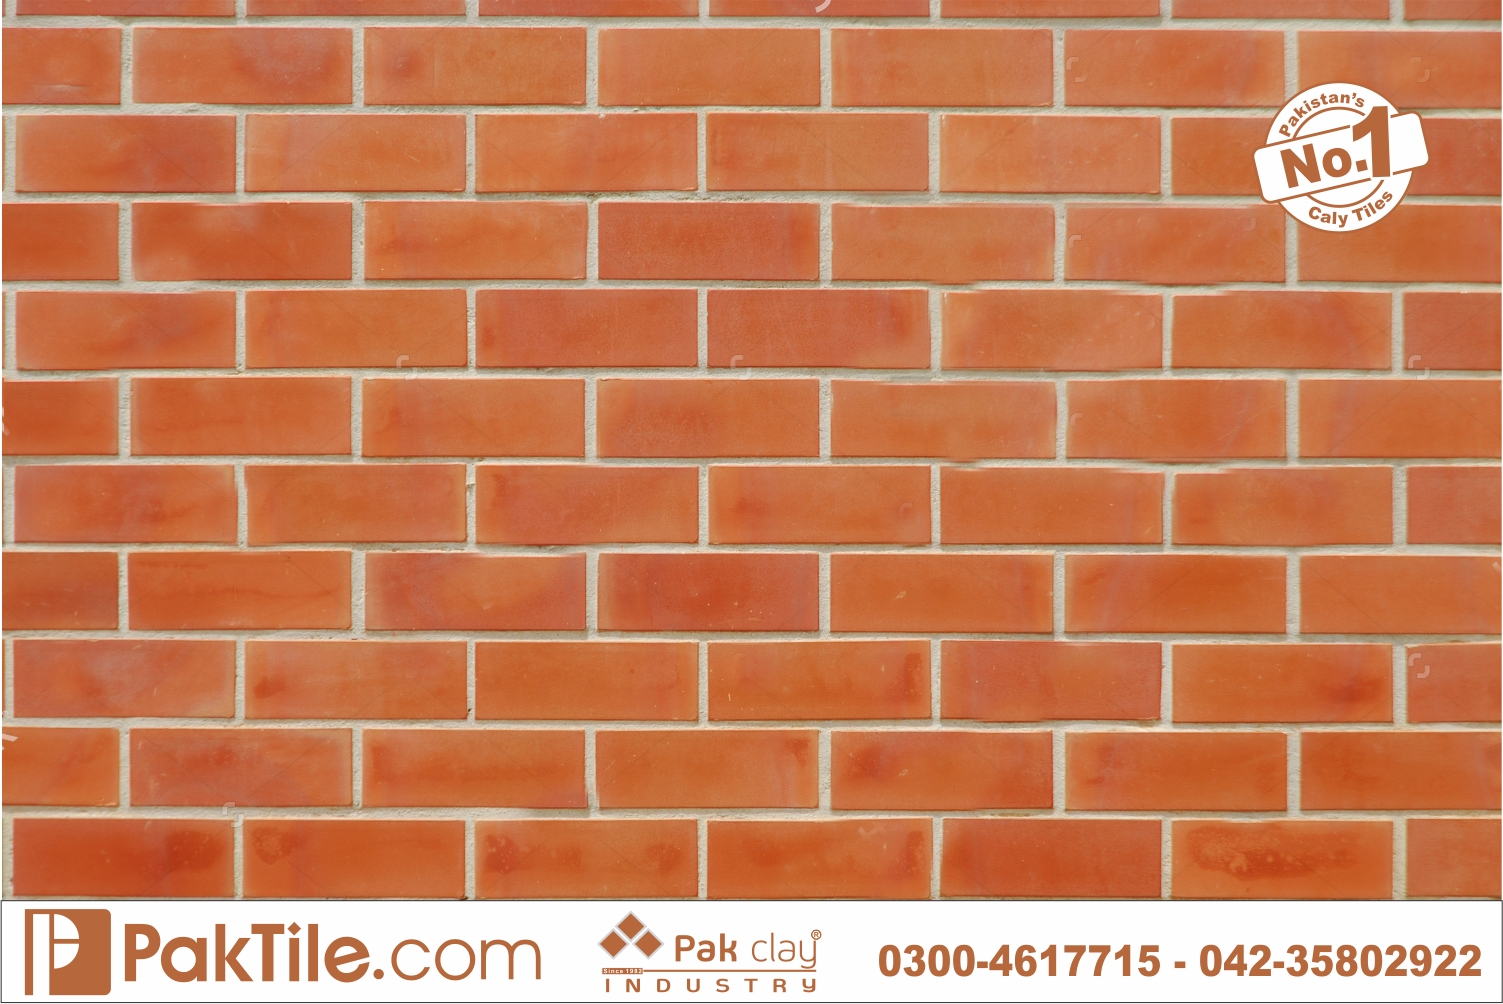 19 Pak clay red bricks price in lahore red bricks price in islamabad images